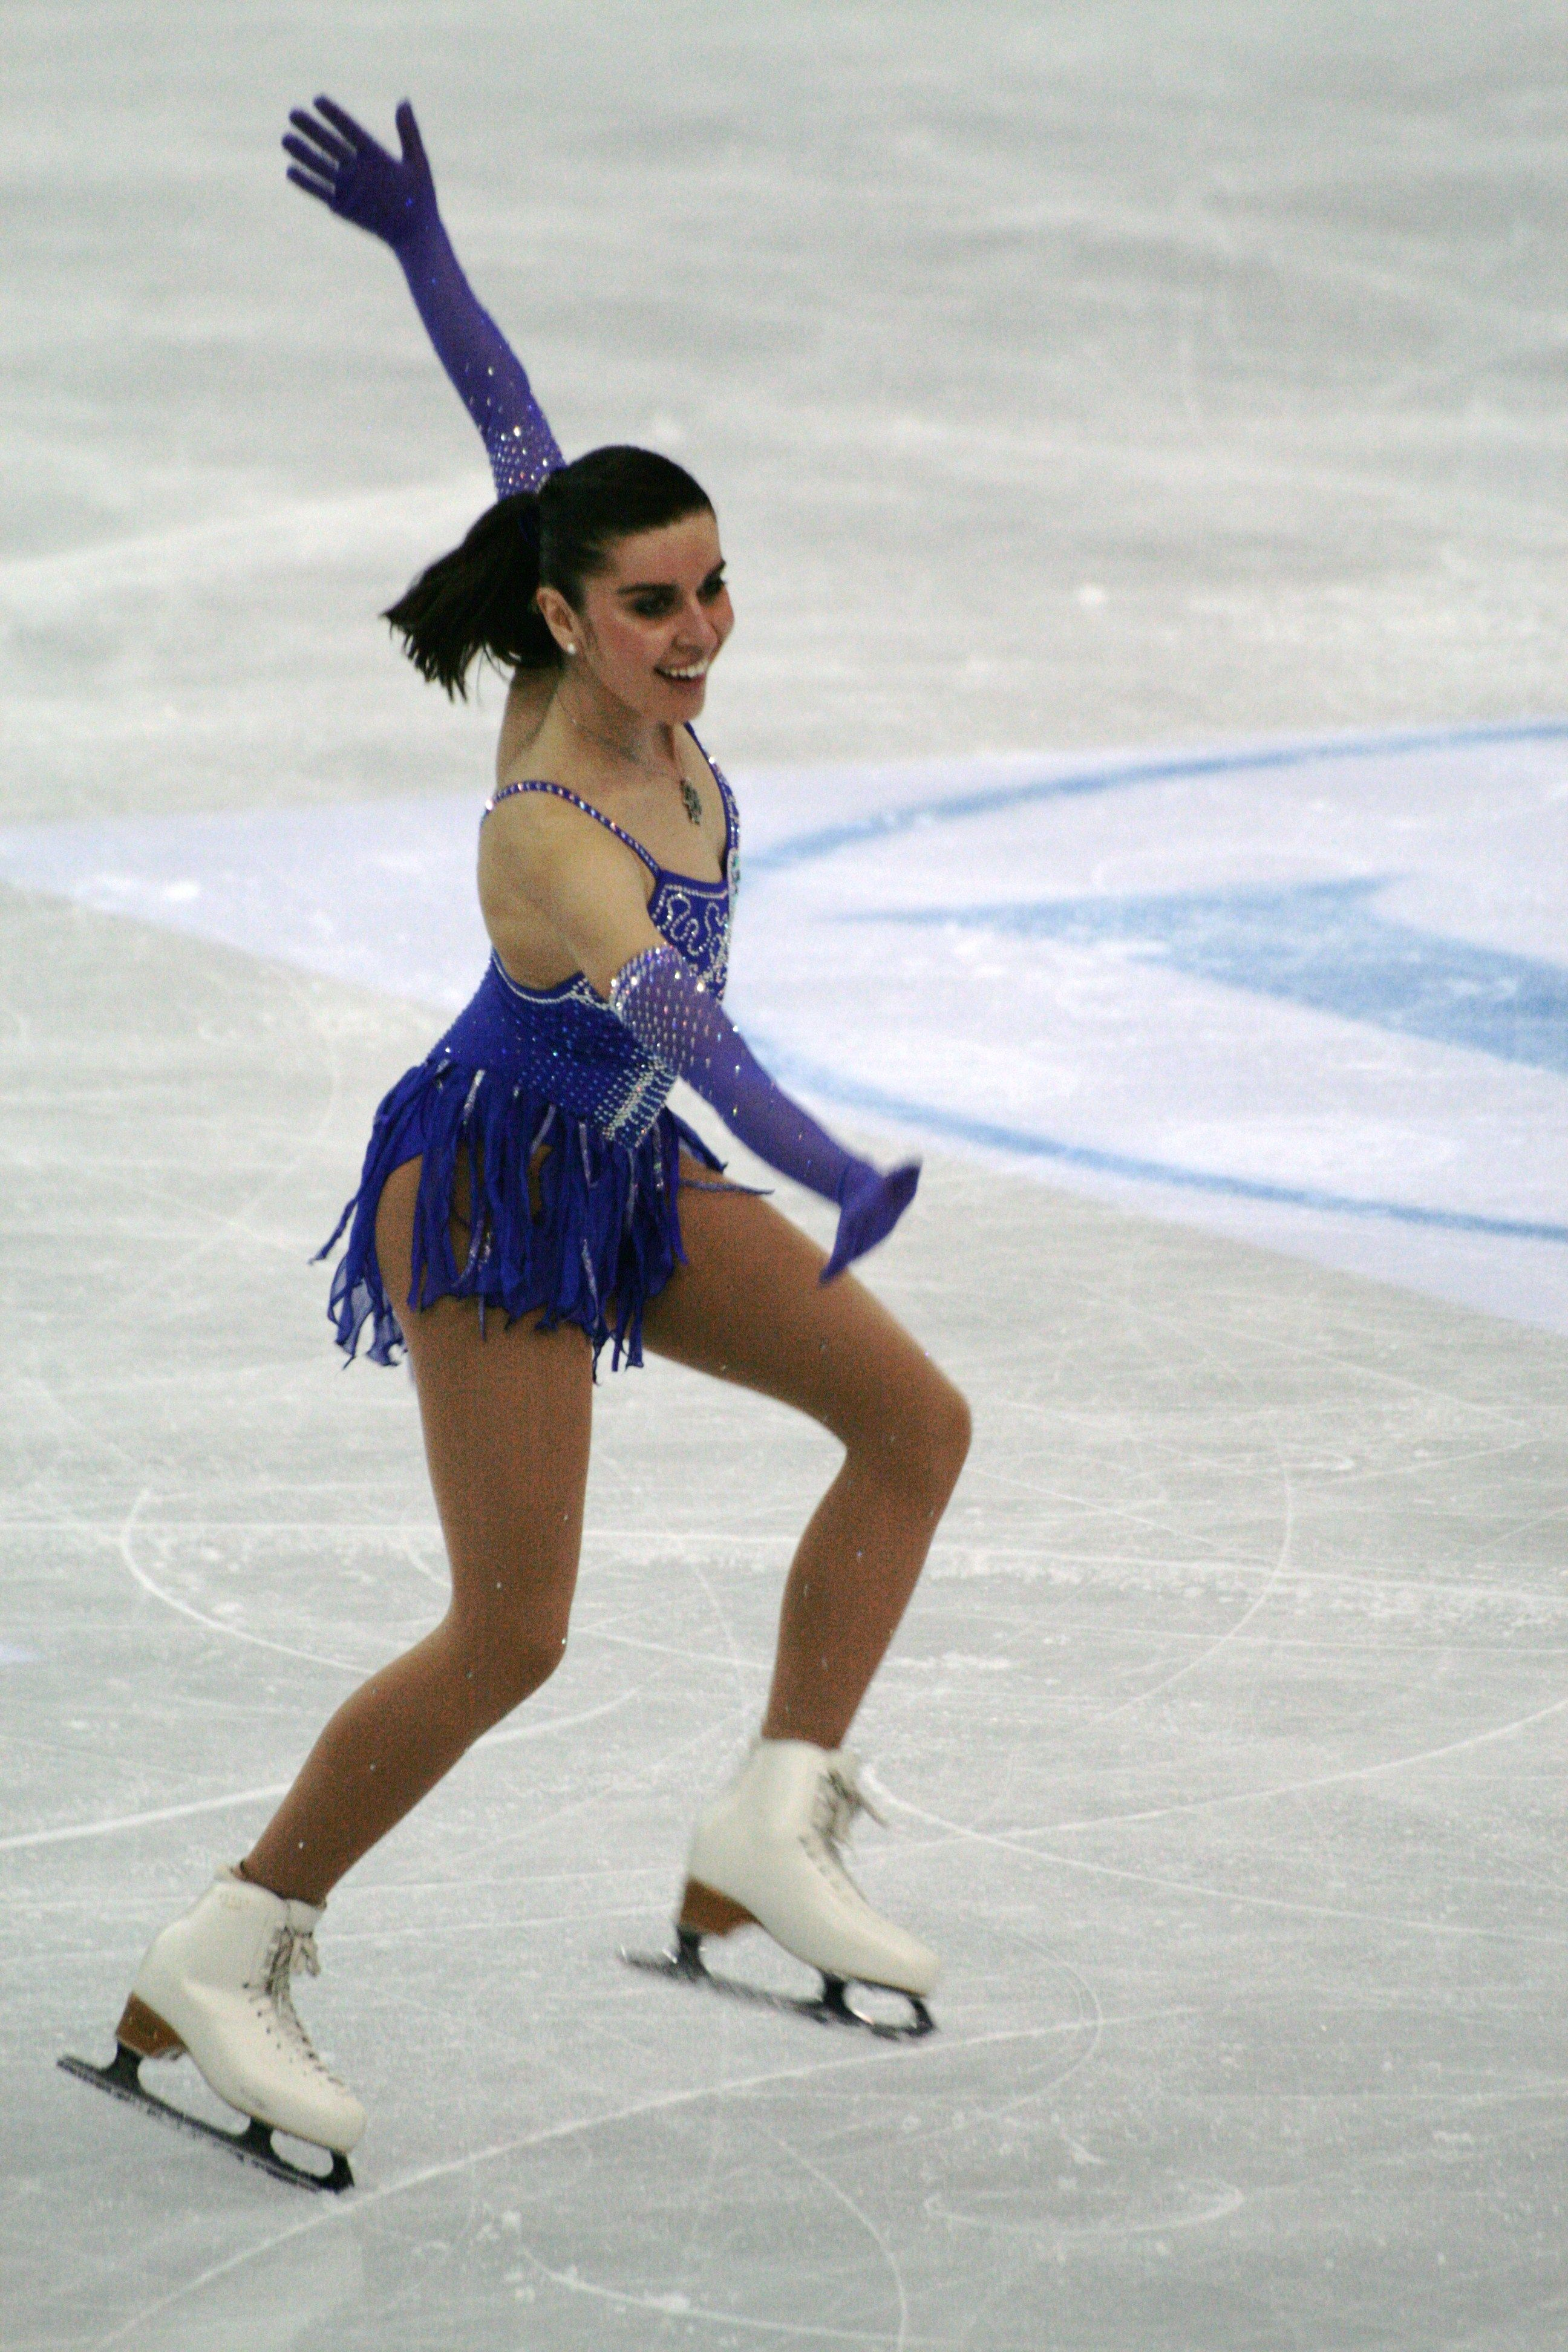 Valentina Marchei - - Blue Figure Skating / Ice Skating dress inspiration for Sk8 Gr8 Designs.